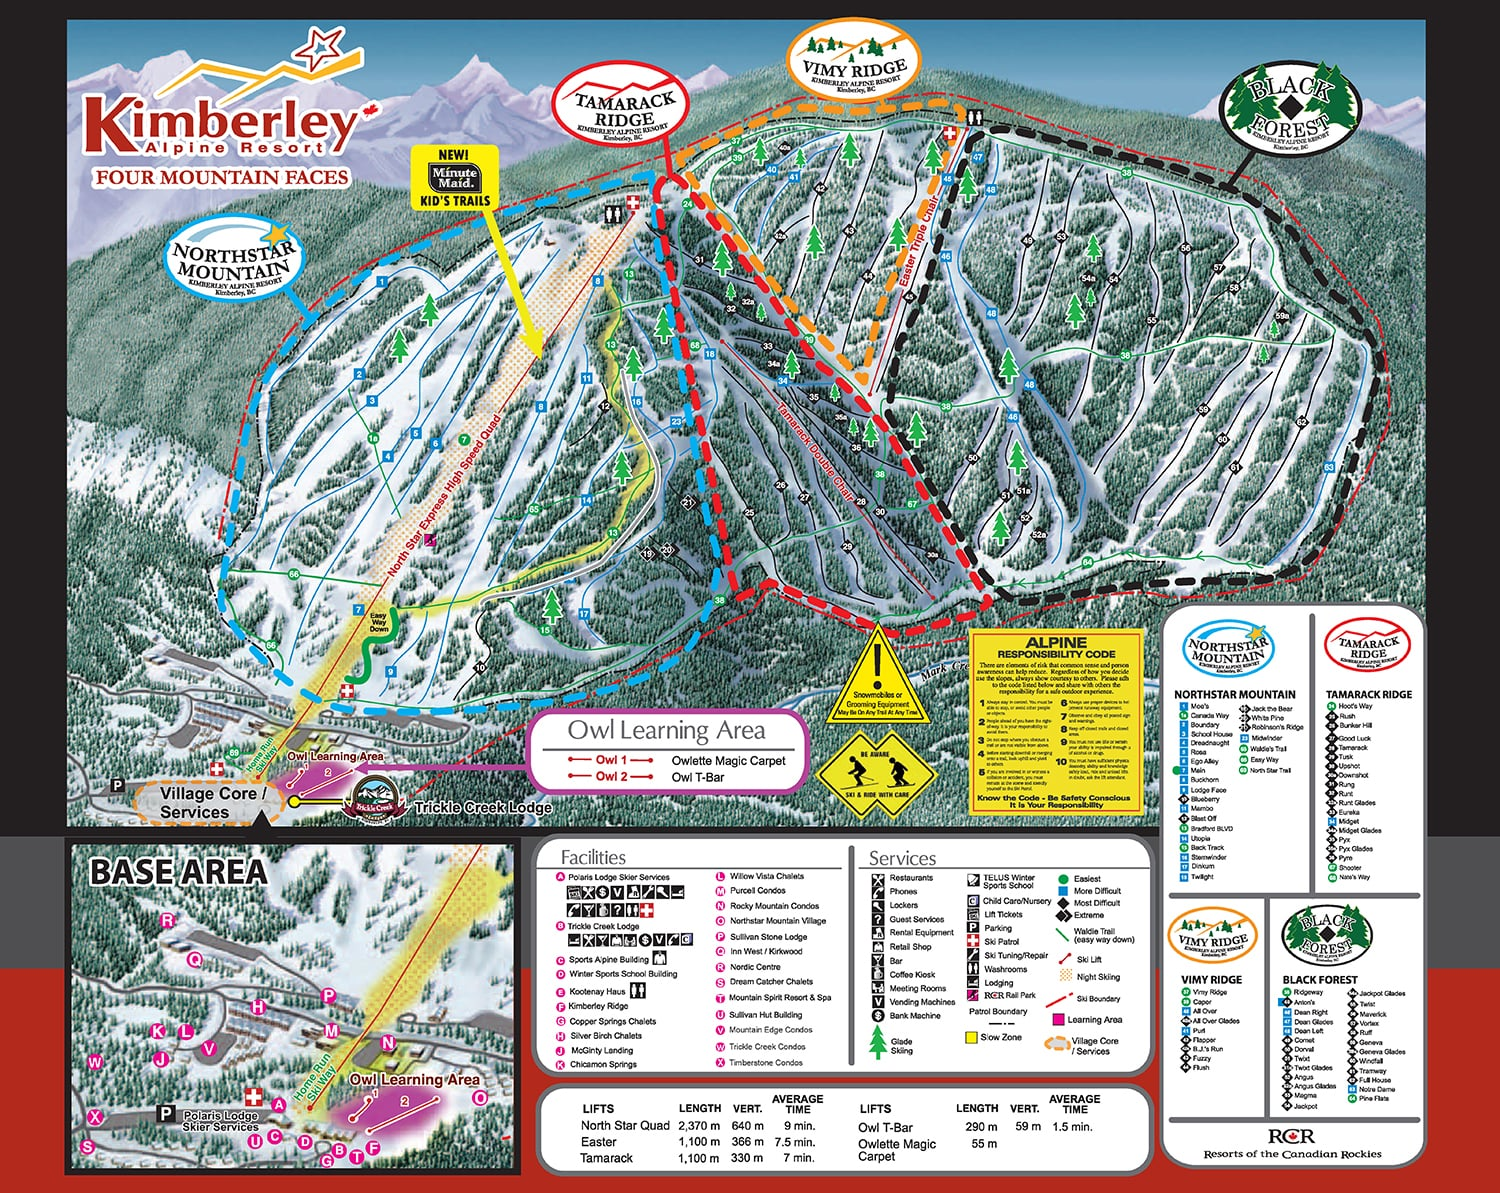 Kimberley Piste / Trail Map